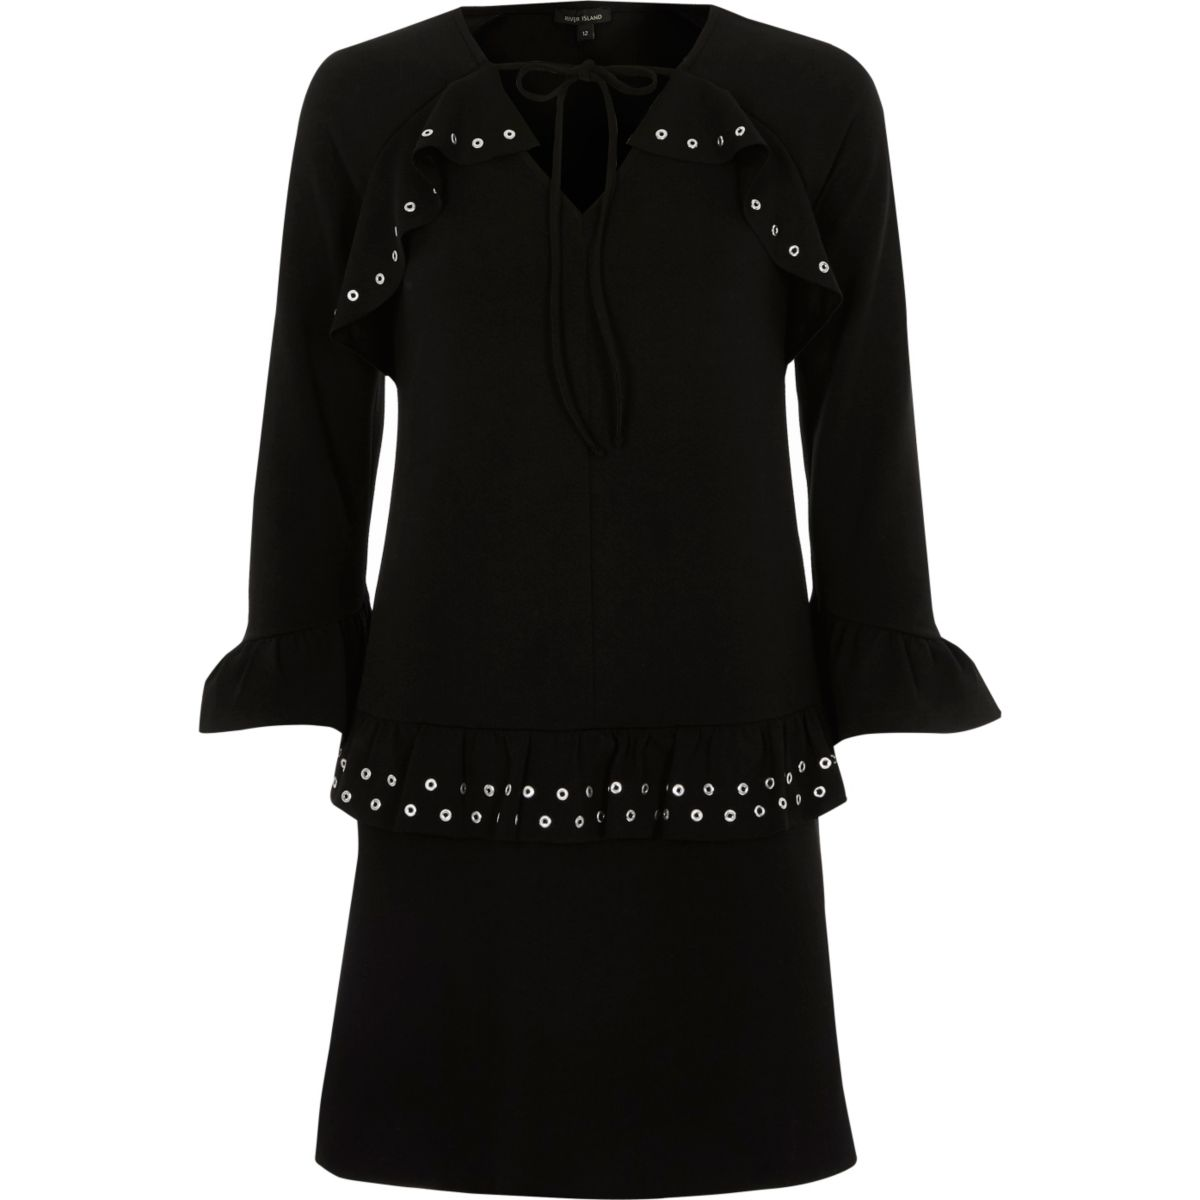 Black frill eyelet long sleeve dress